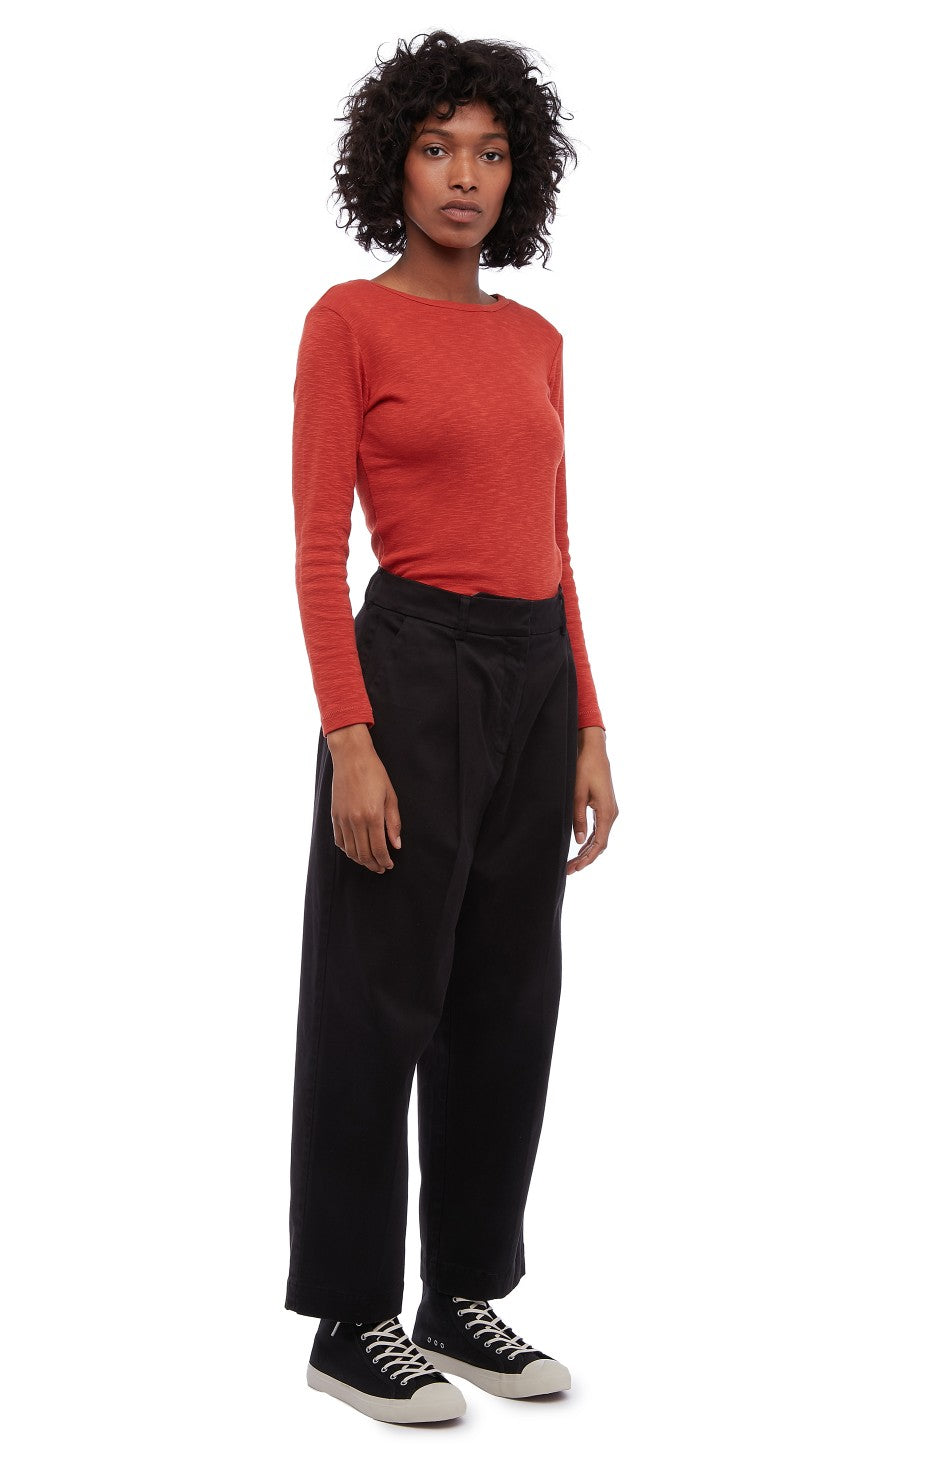 Market Pants in Black